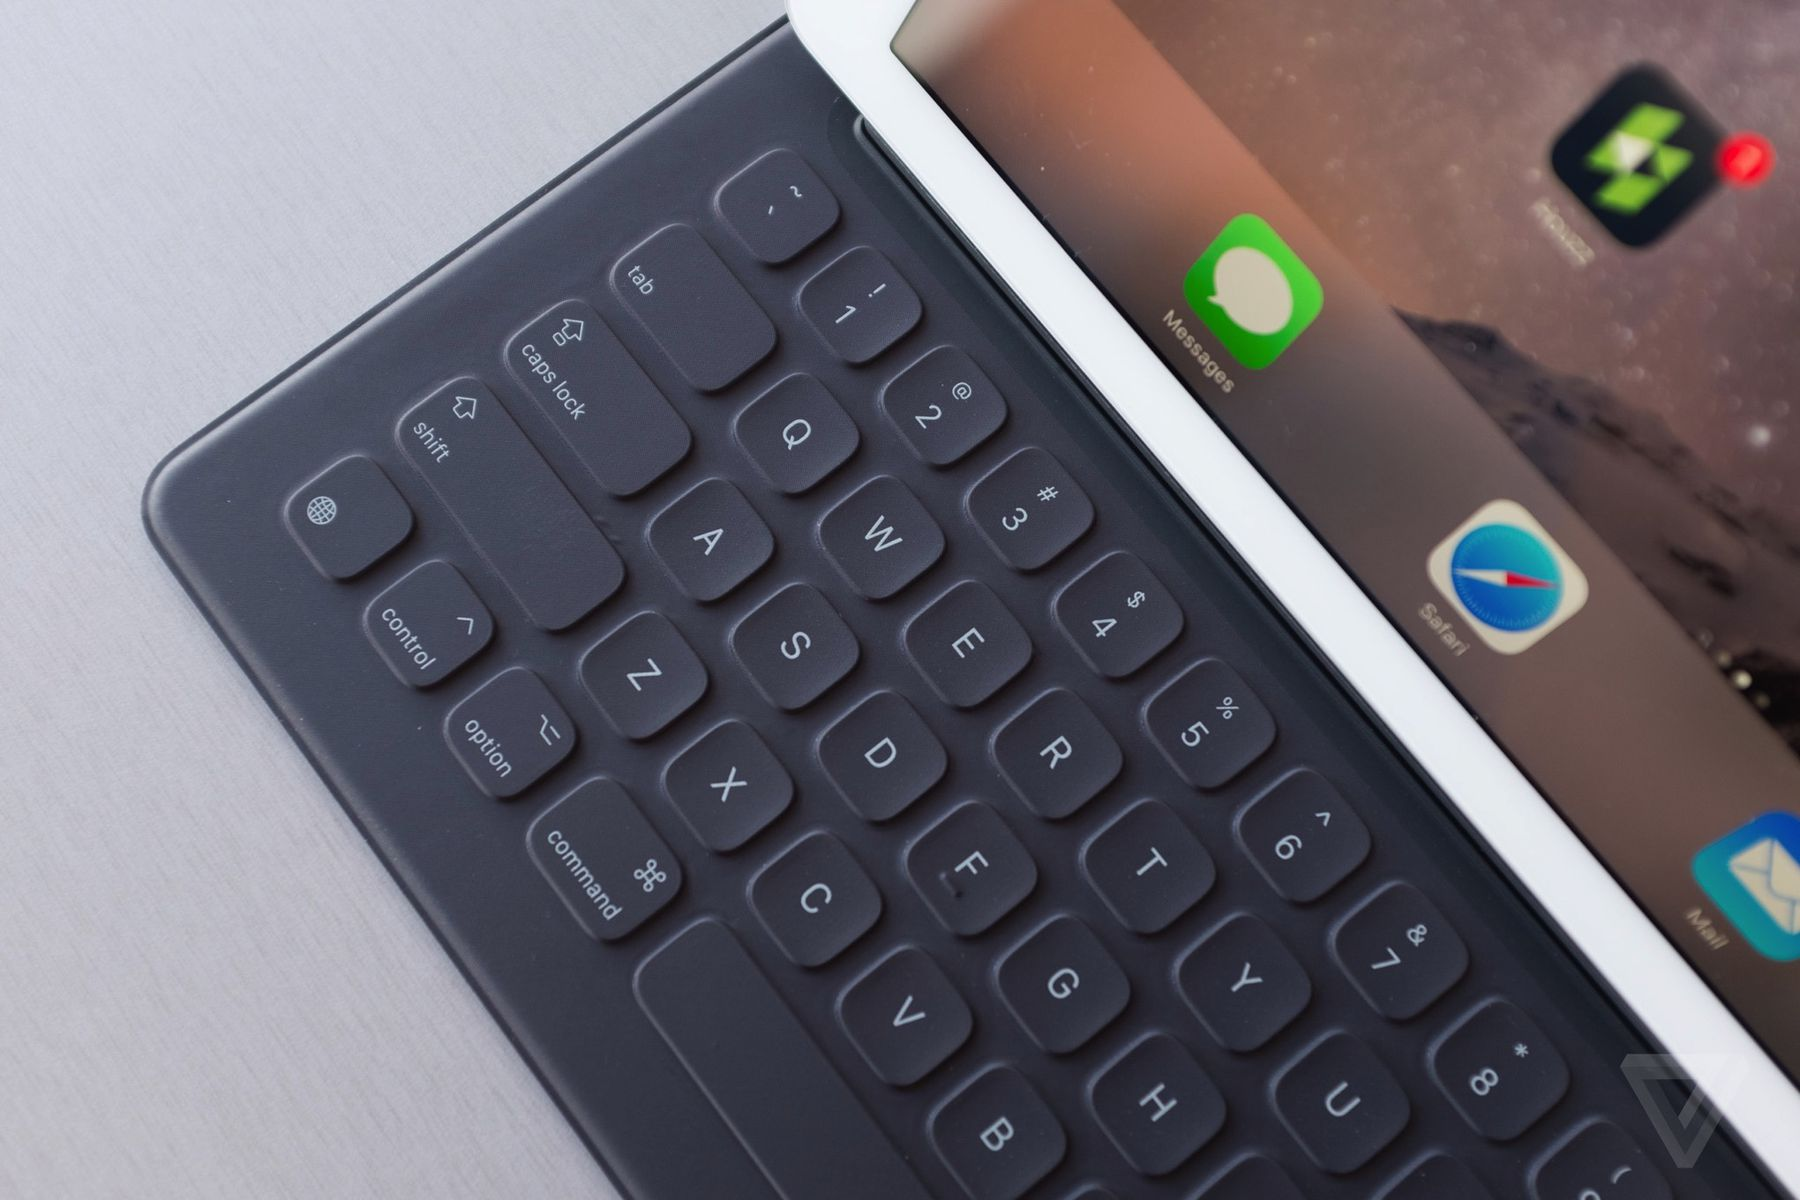 Apple will provide free Smart Keyboard repairs for three years because of 'functional issues'. On the extended service program, MacRumors and 9to5Mac